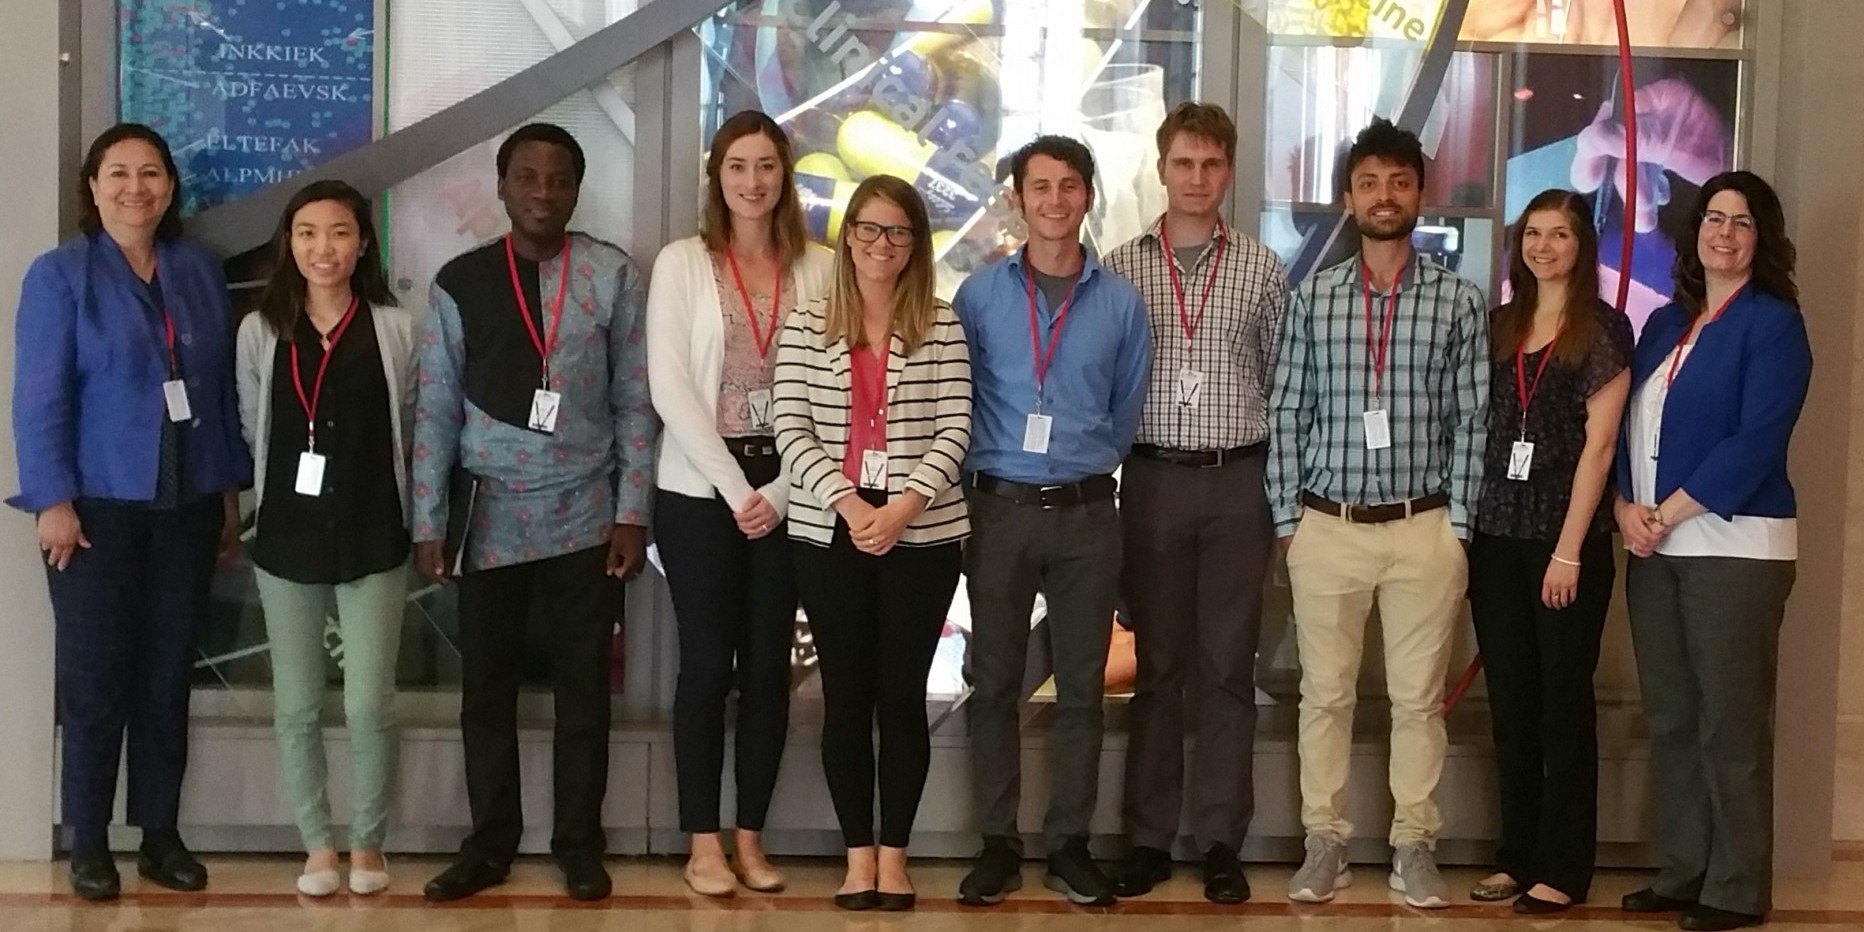 Elvira de Mejia and Jeccia Hartke in a photo with a group of students from DNS course